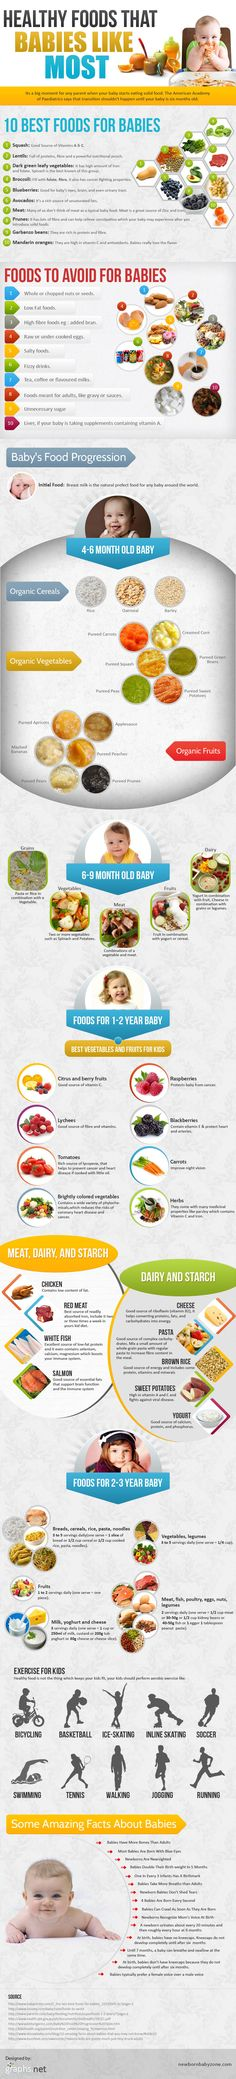 Infographic: Healthy Foods That Babies Like Most